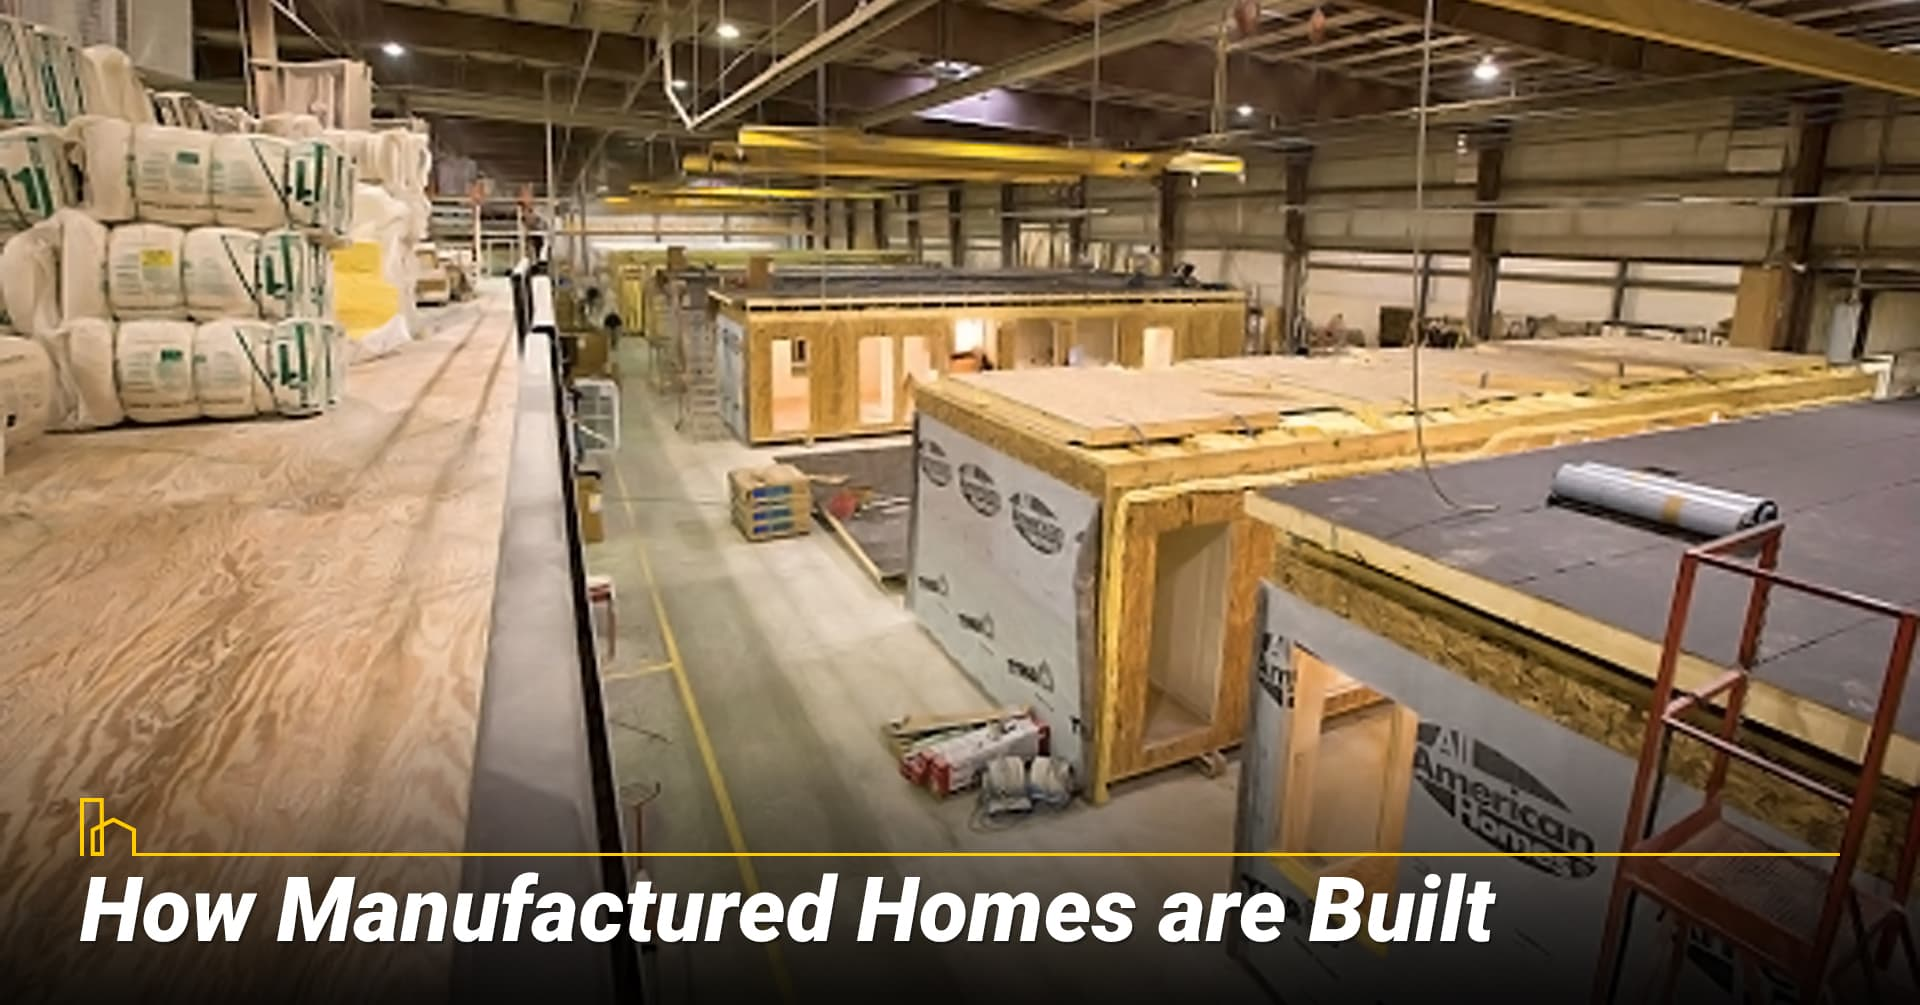 How Manufactured Homes are Built, build manufactured home